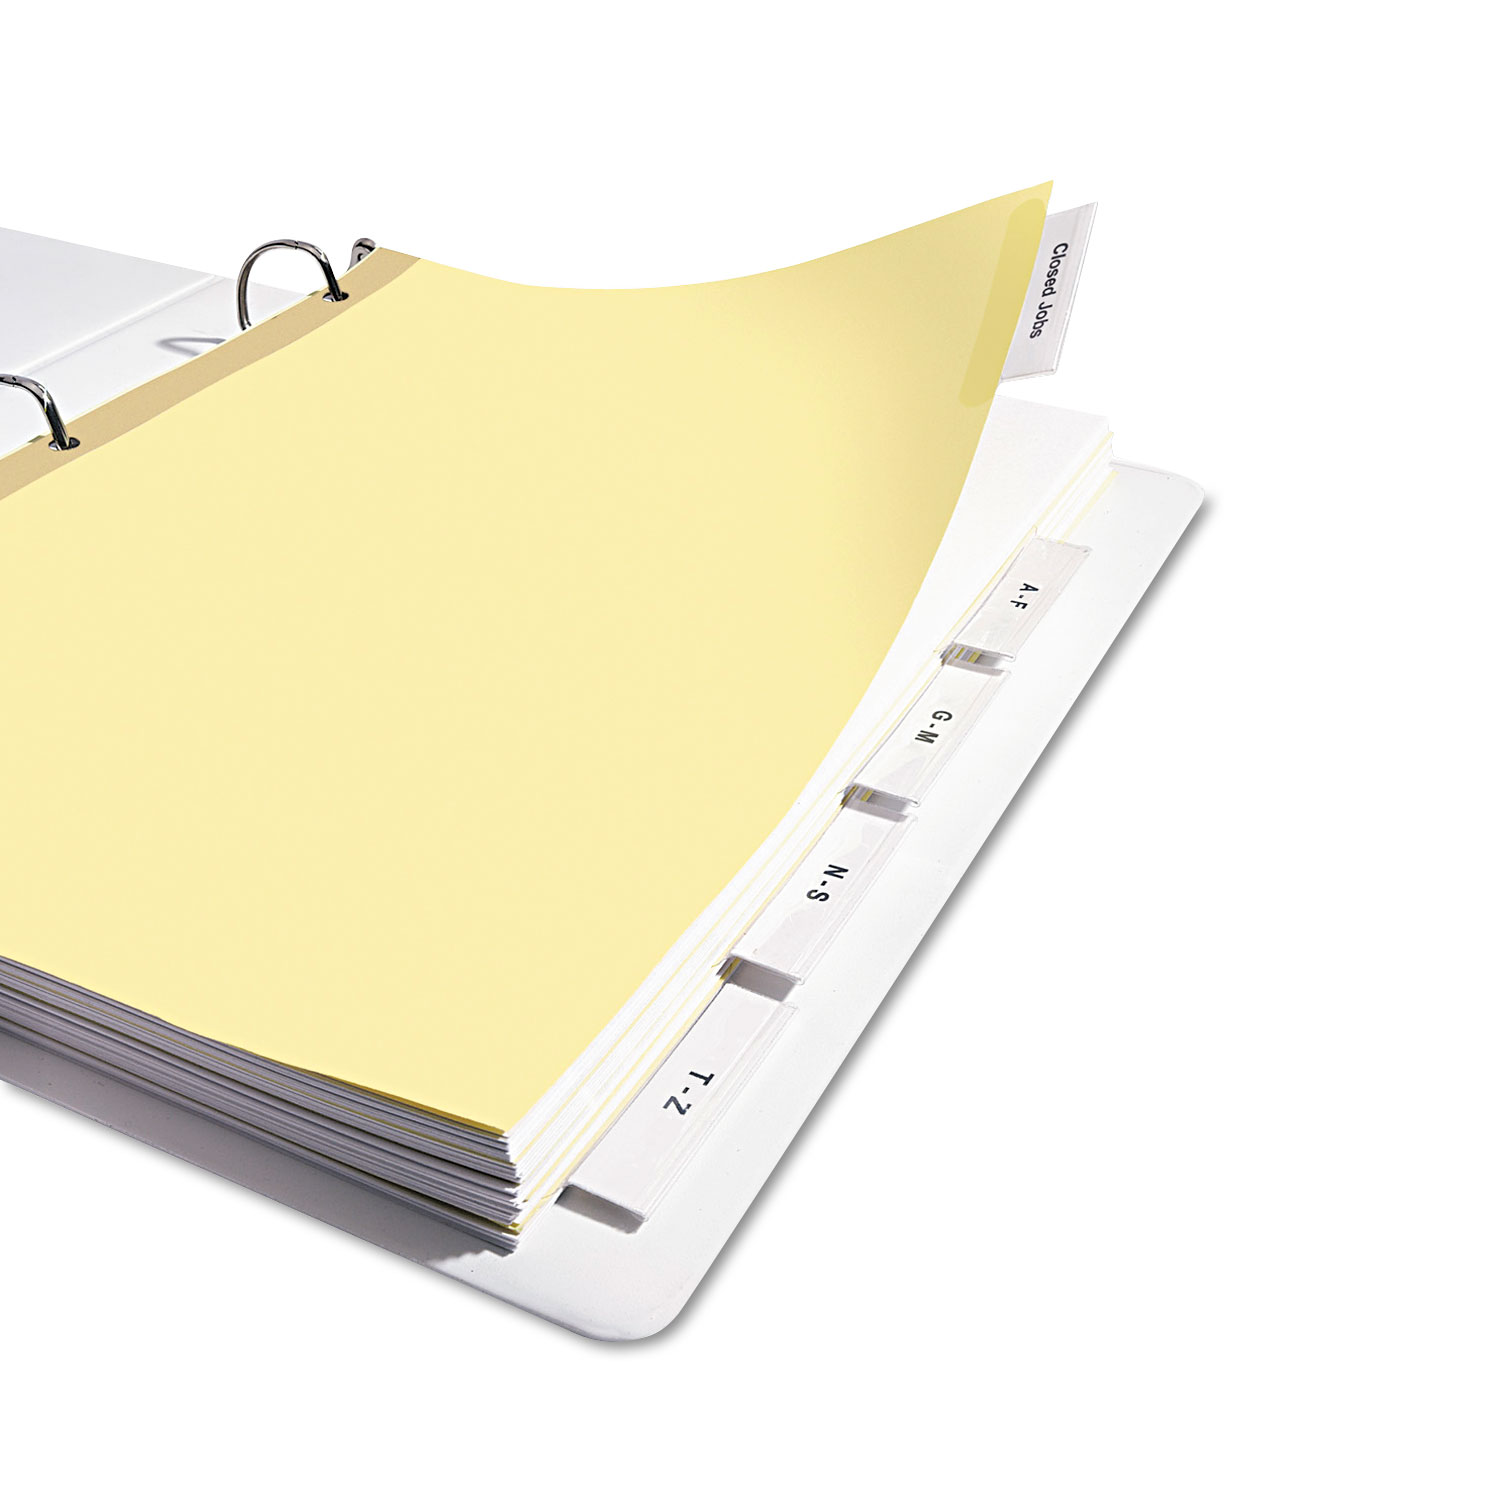 Insertable Big Tab Dividers, 5-Tab, Letter - Alphapointe